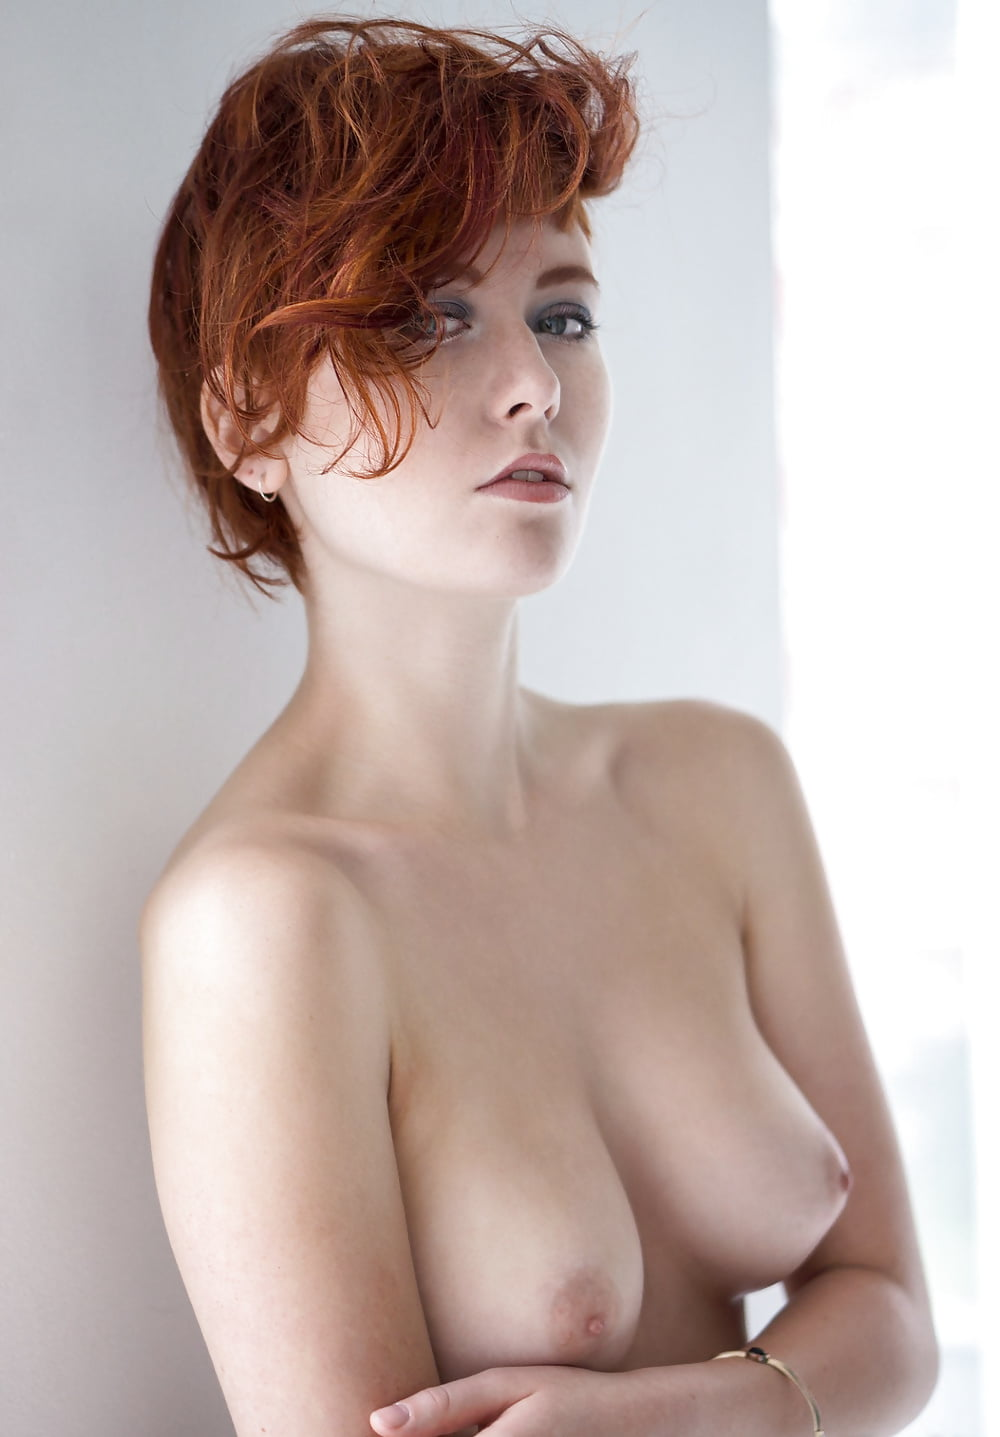 hot-short-haired-nudes